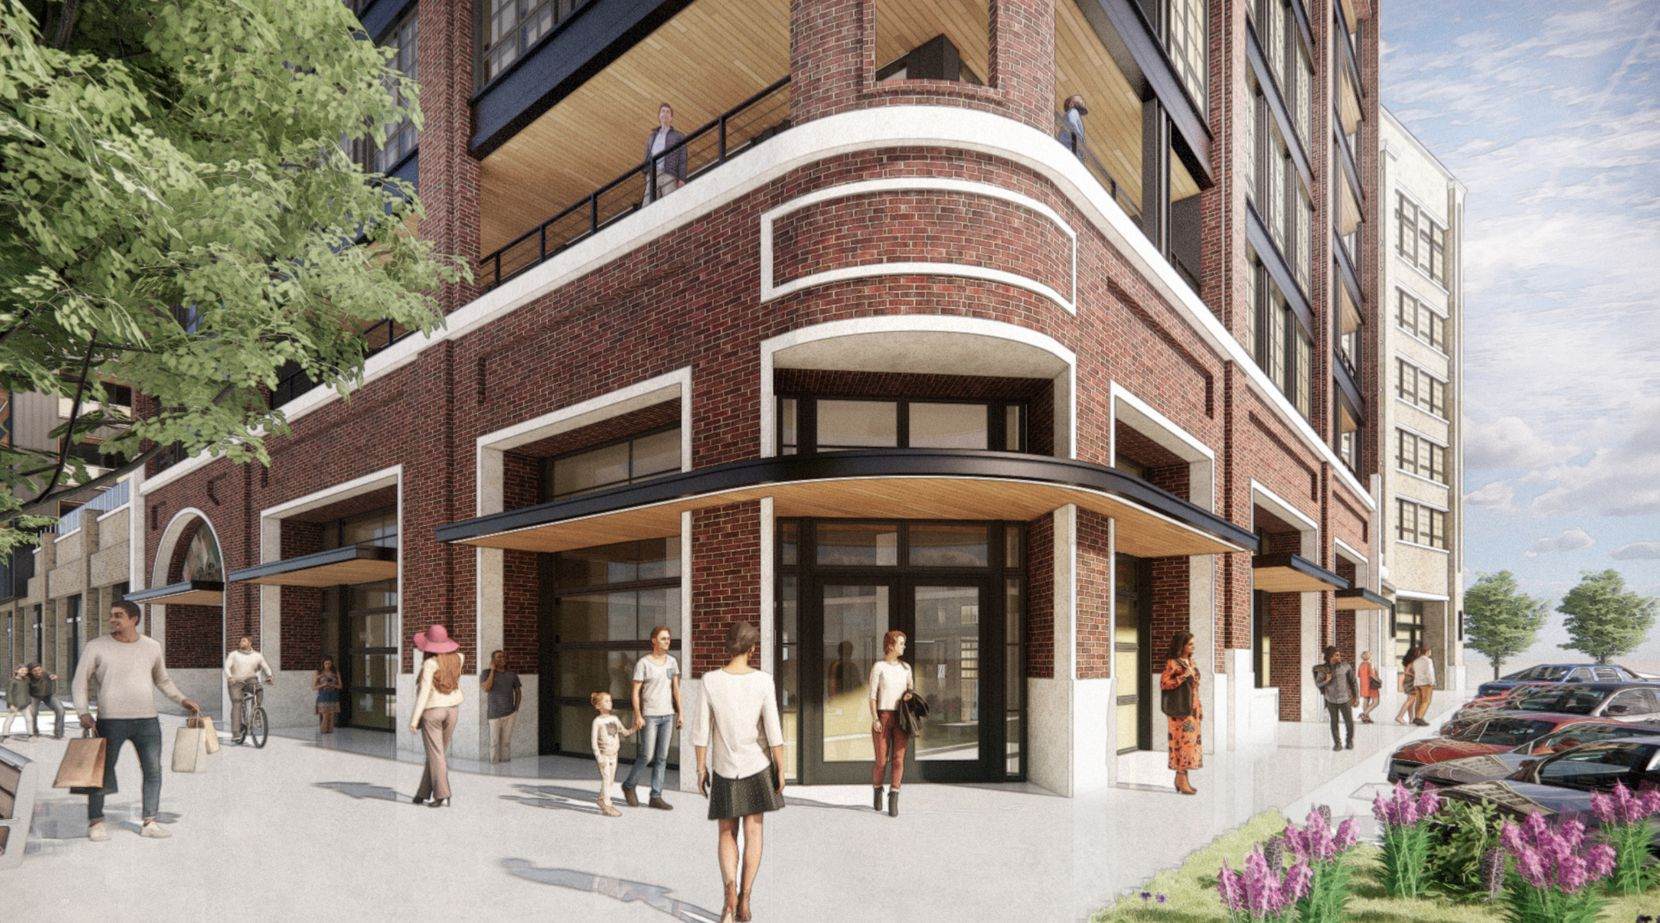 The Willow building will have ground floor retail and live/work units.